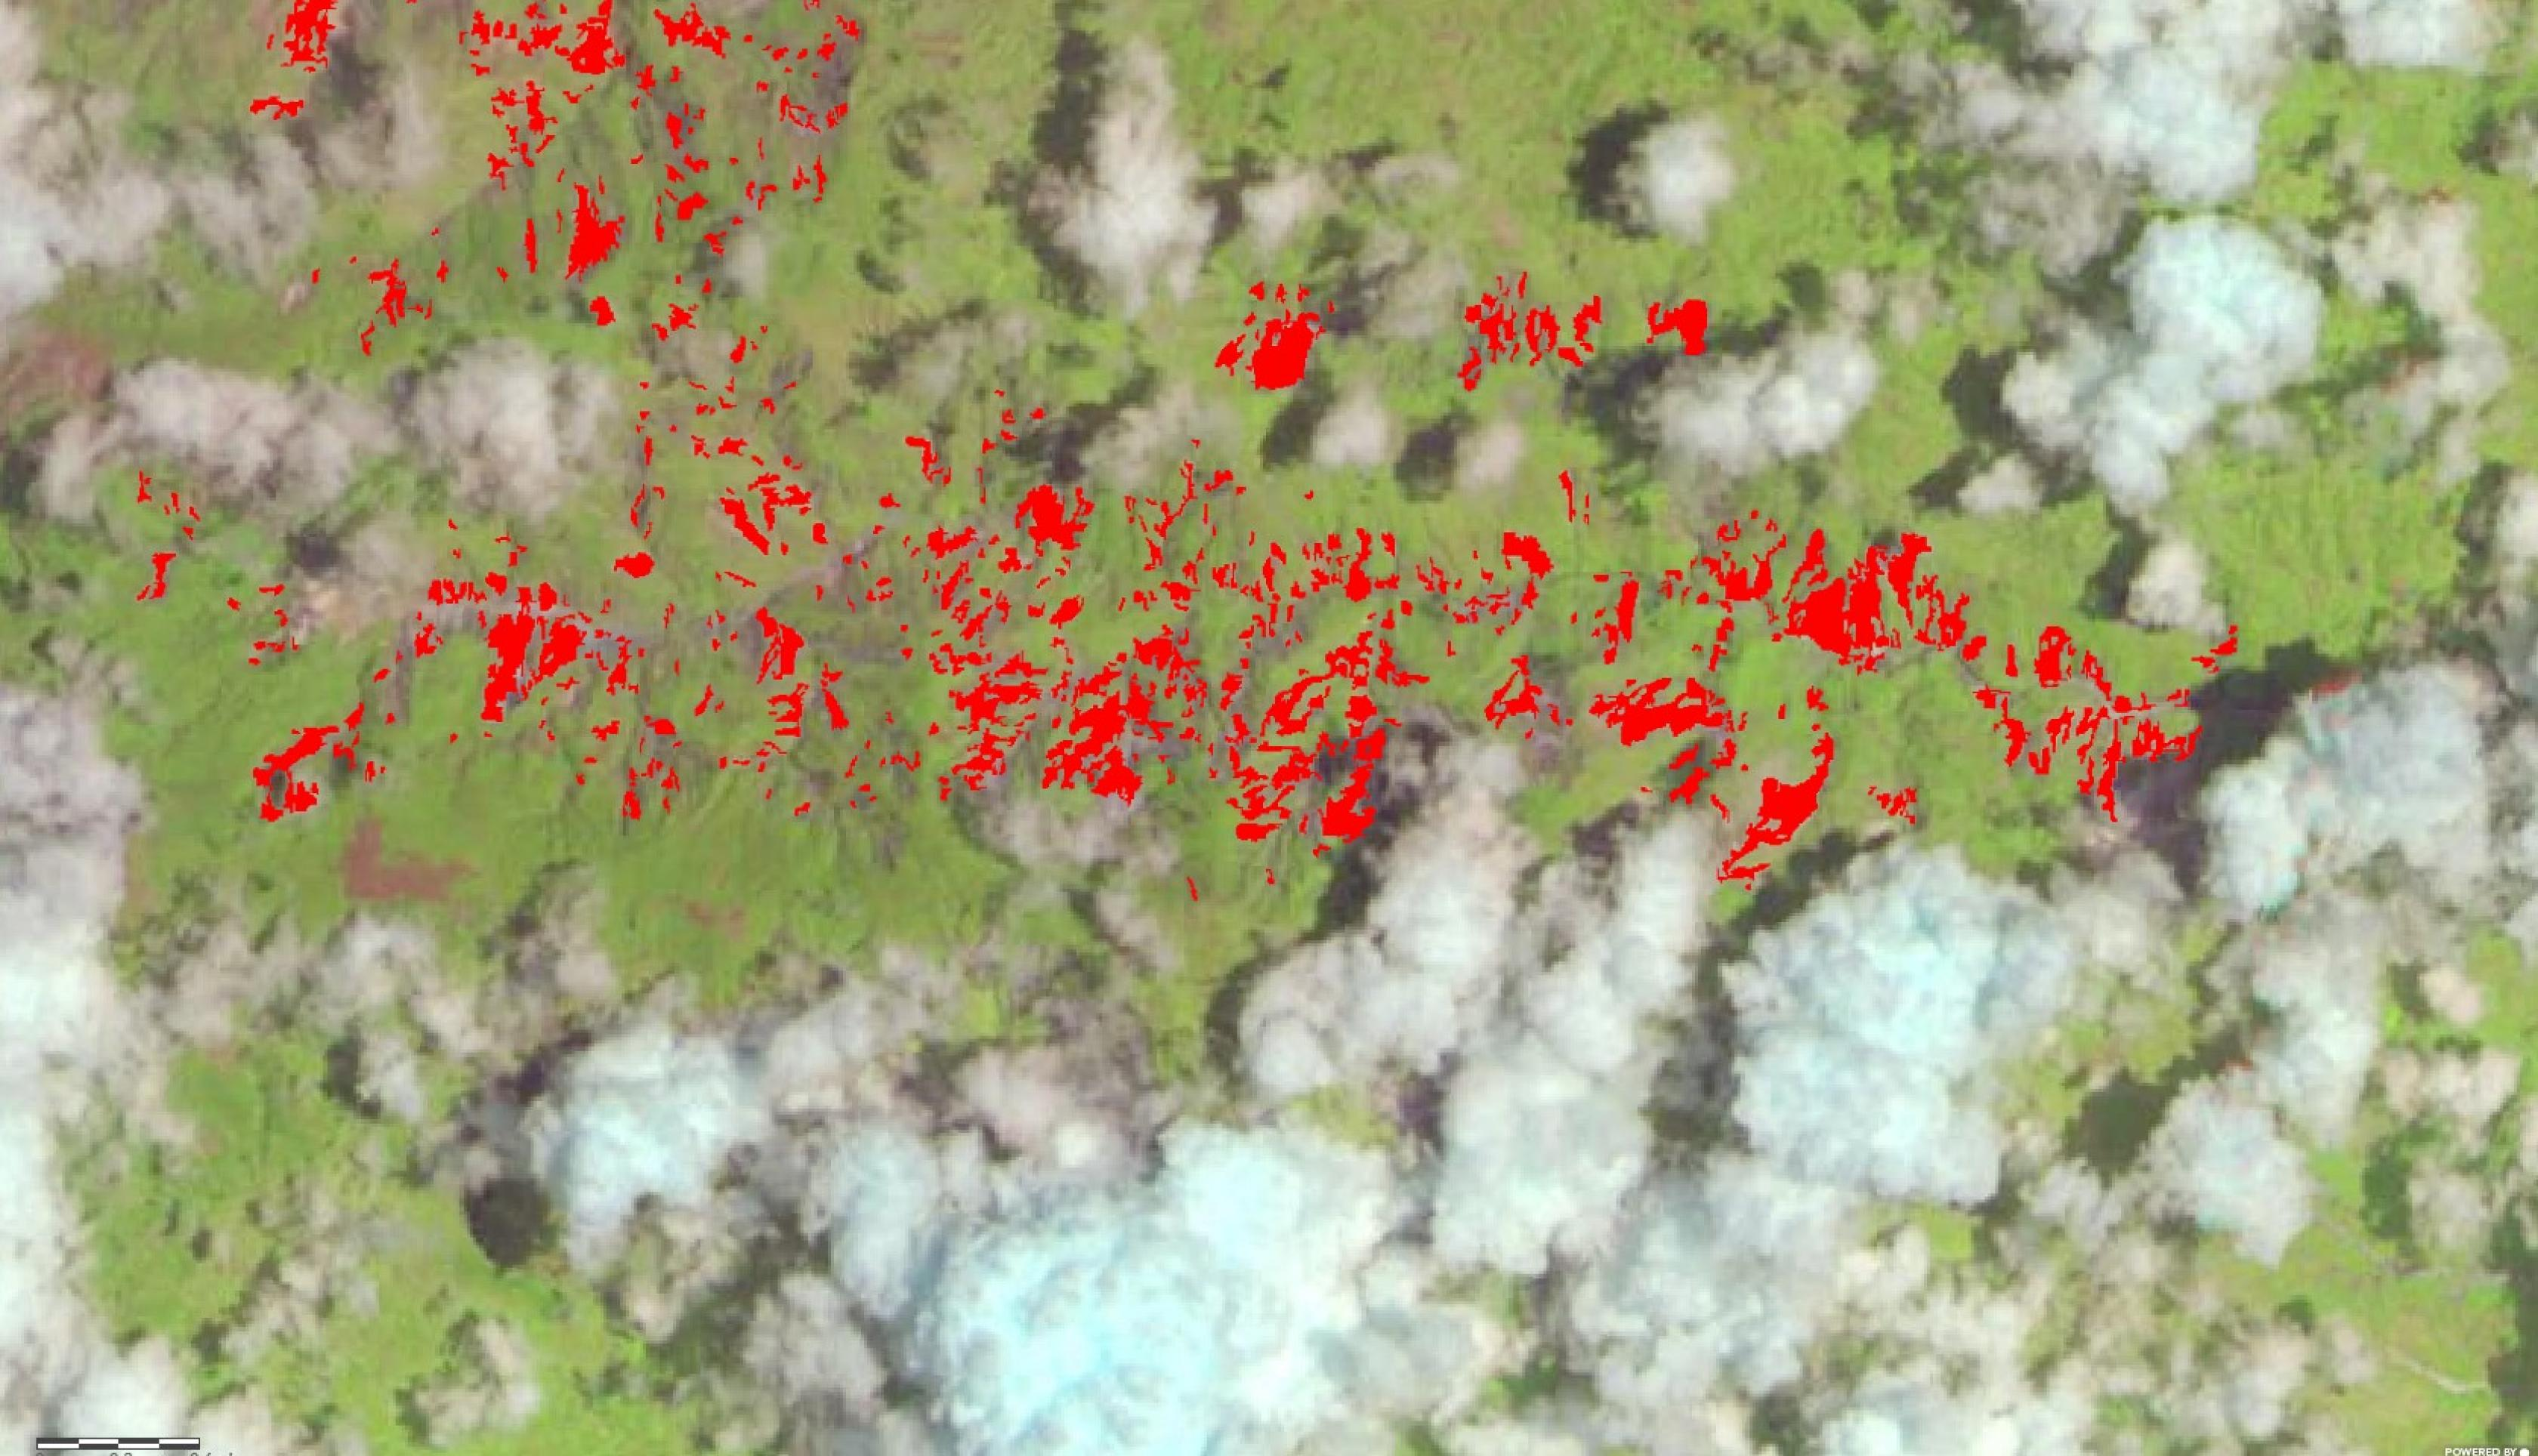 """The NASA Goddard Space Flight Center landslides team, with support from the A.37 ROSES research project """"Enabling Landslide Disaster Risk Reduction and Response Throughout the Disaster Life Cycle With a Multi-scale Toolbox,"""" has mapped landslides in the region using the Semi-Automatic Landslide Detection (SALaD) system. SALaD uses optical satellite imagery and machine learning to identify areas potentially affected by landslides. In conjunction with the other data available, these provide additional awarene"""